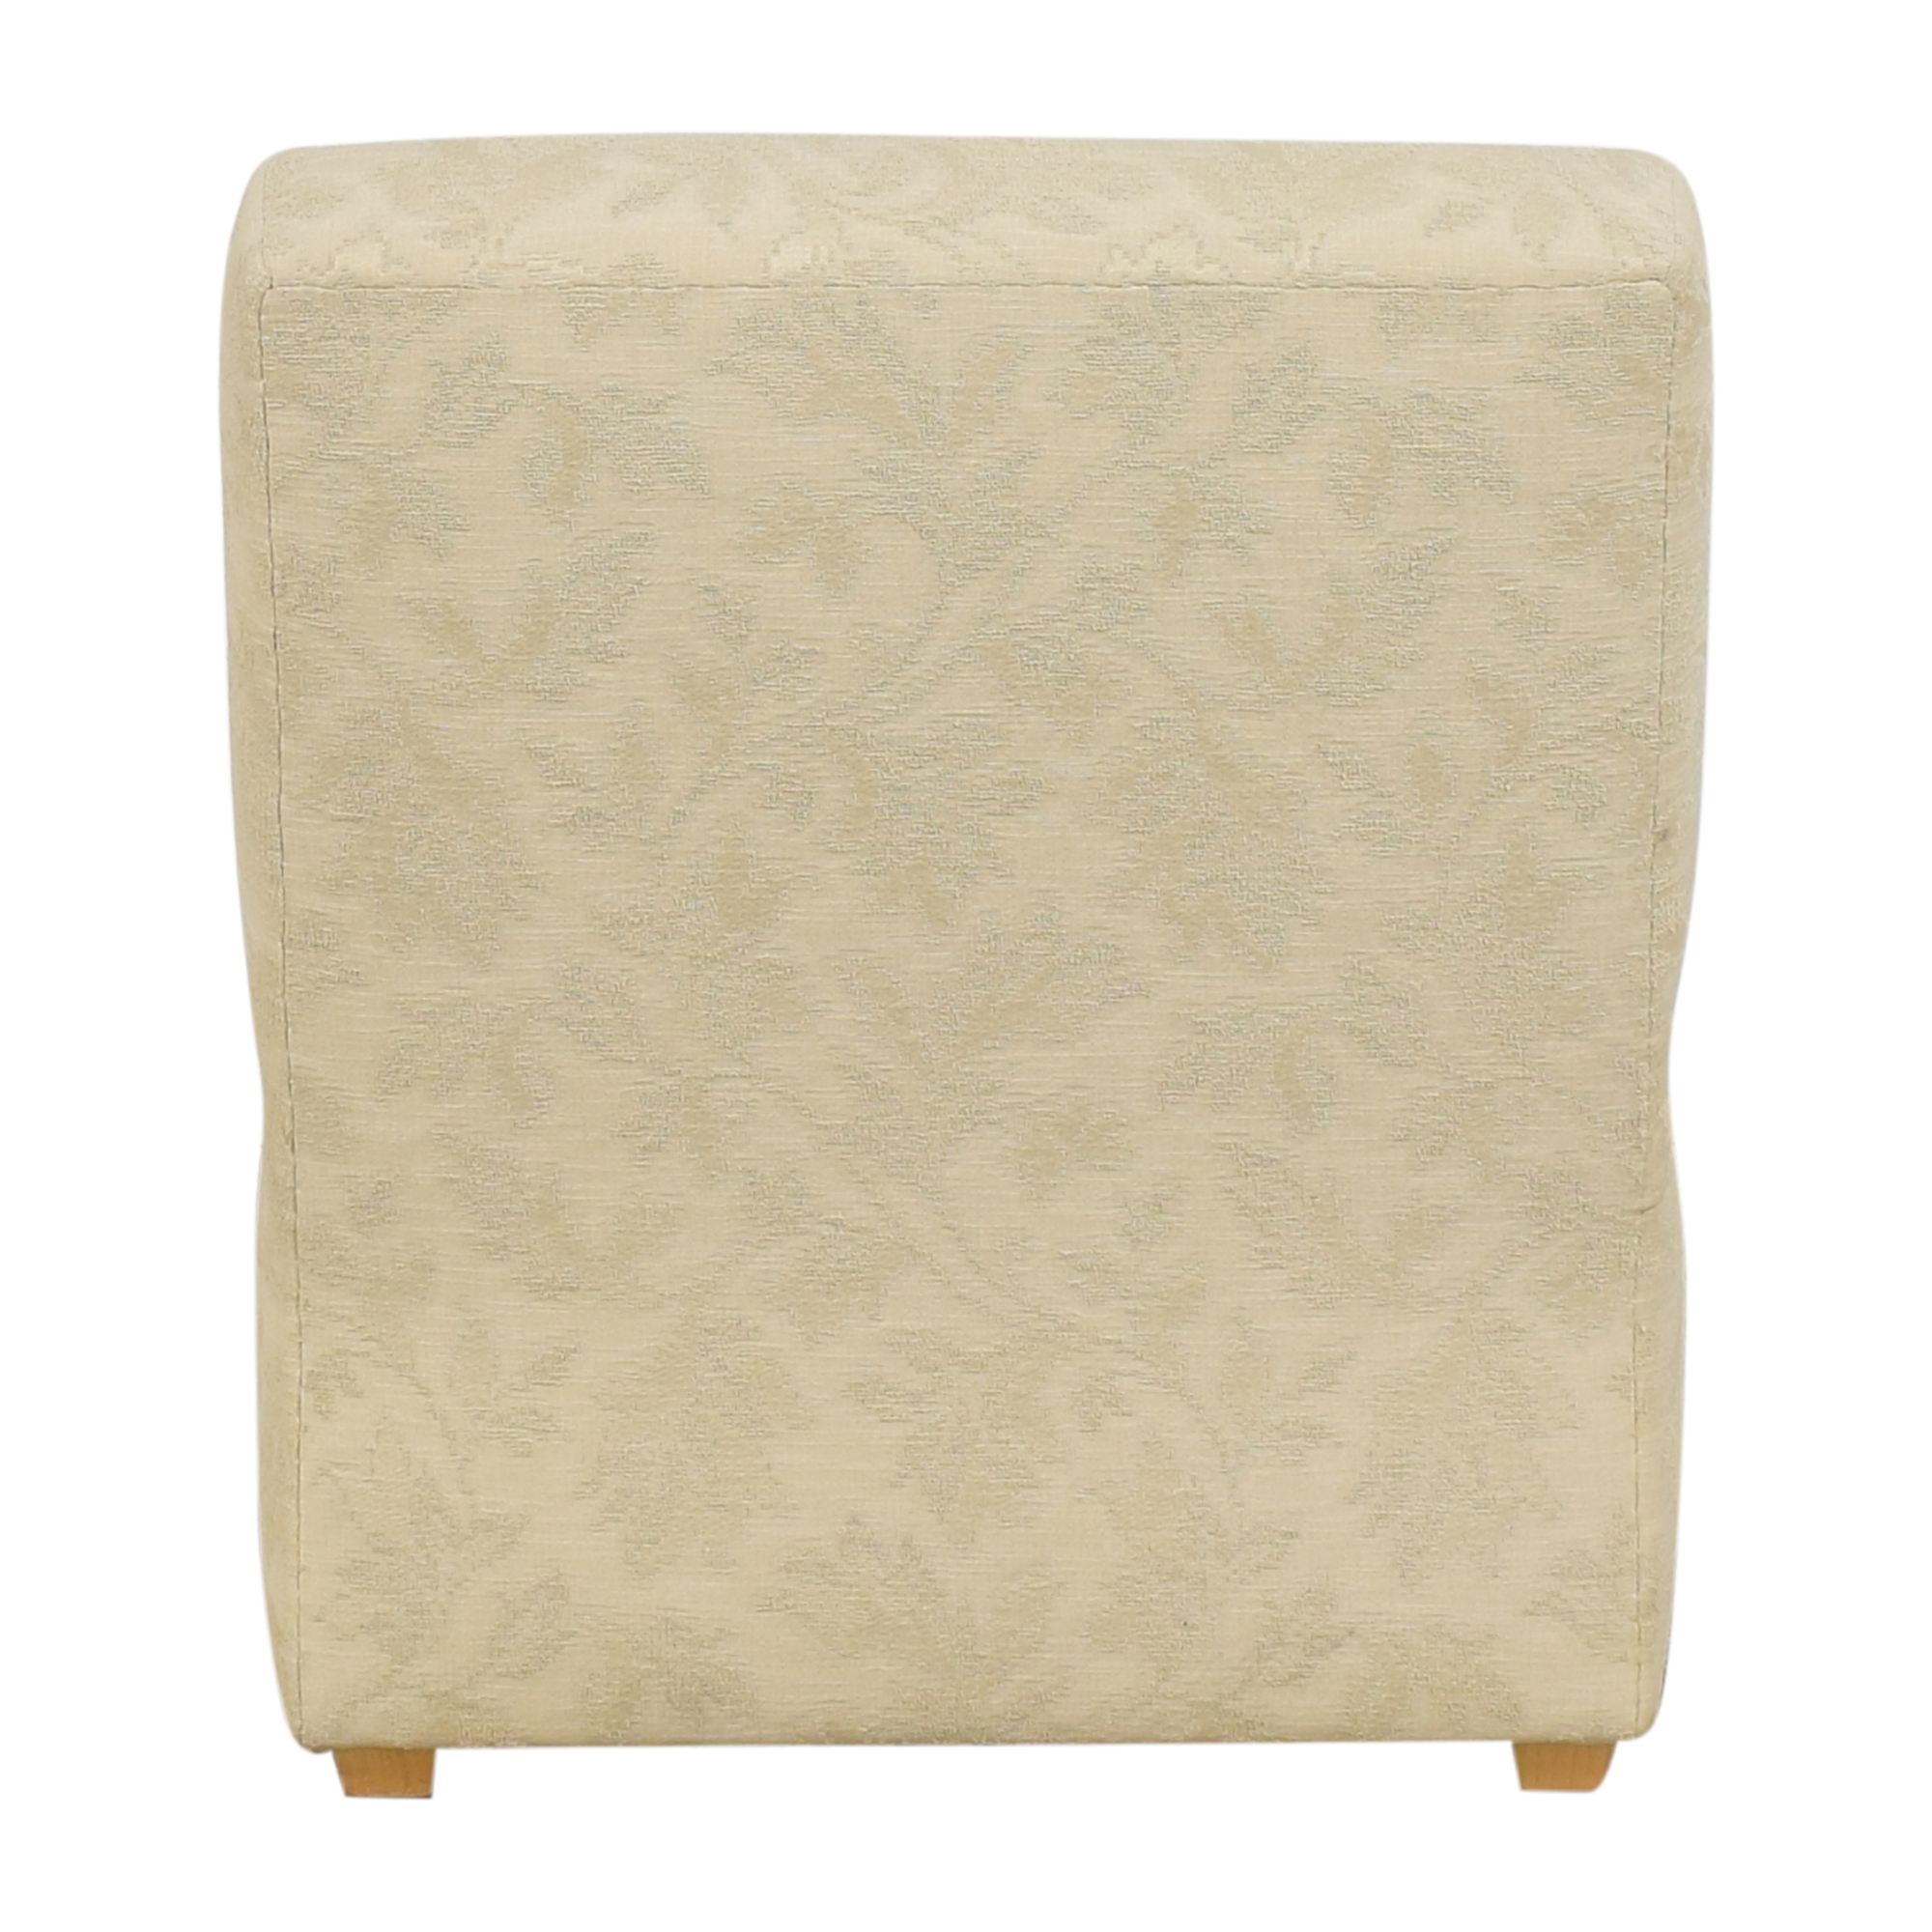 Billy Baldwin Studio Billy Baldwin Studio Large Slipper Chair by Ventry used